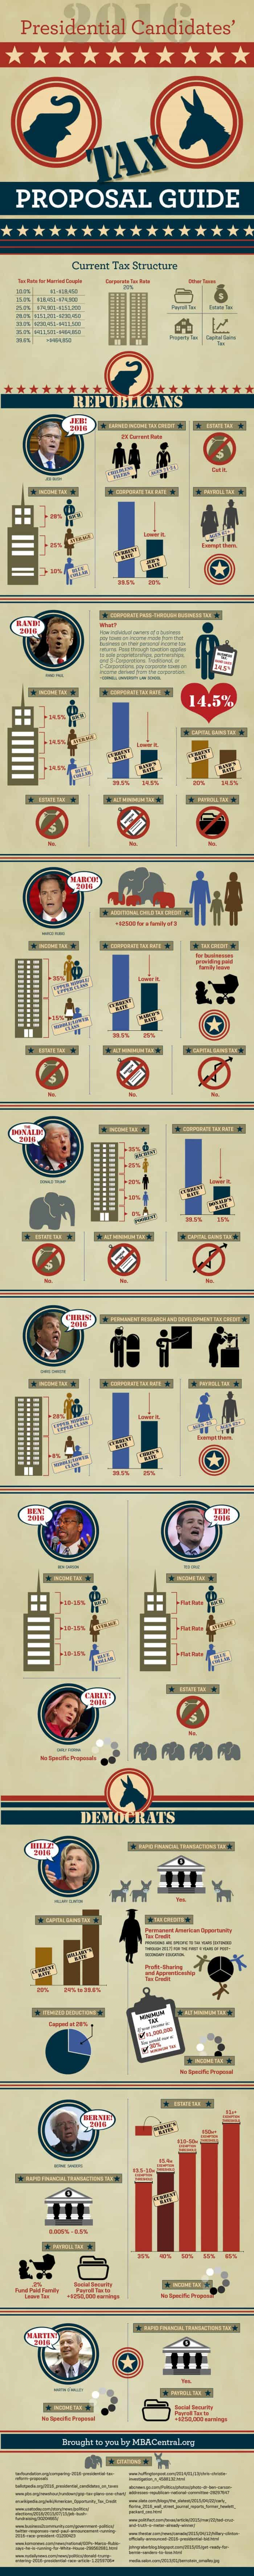 2016 Presidential Candidate Tax Proposals Guide Infographic